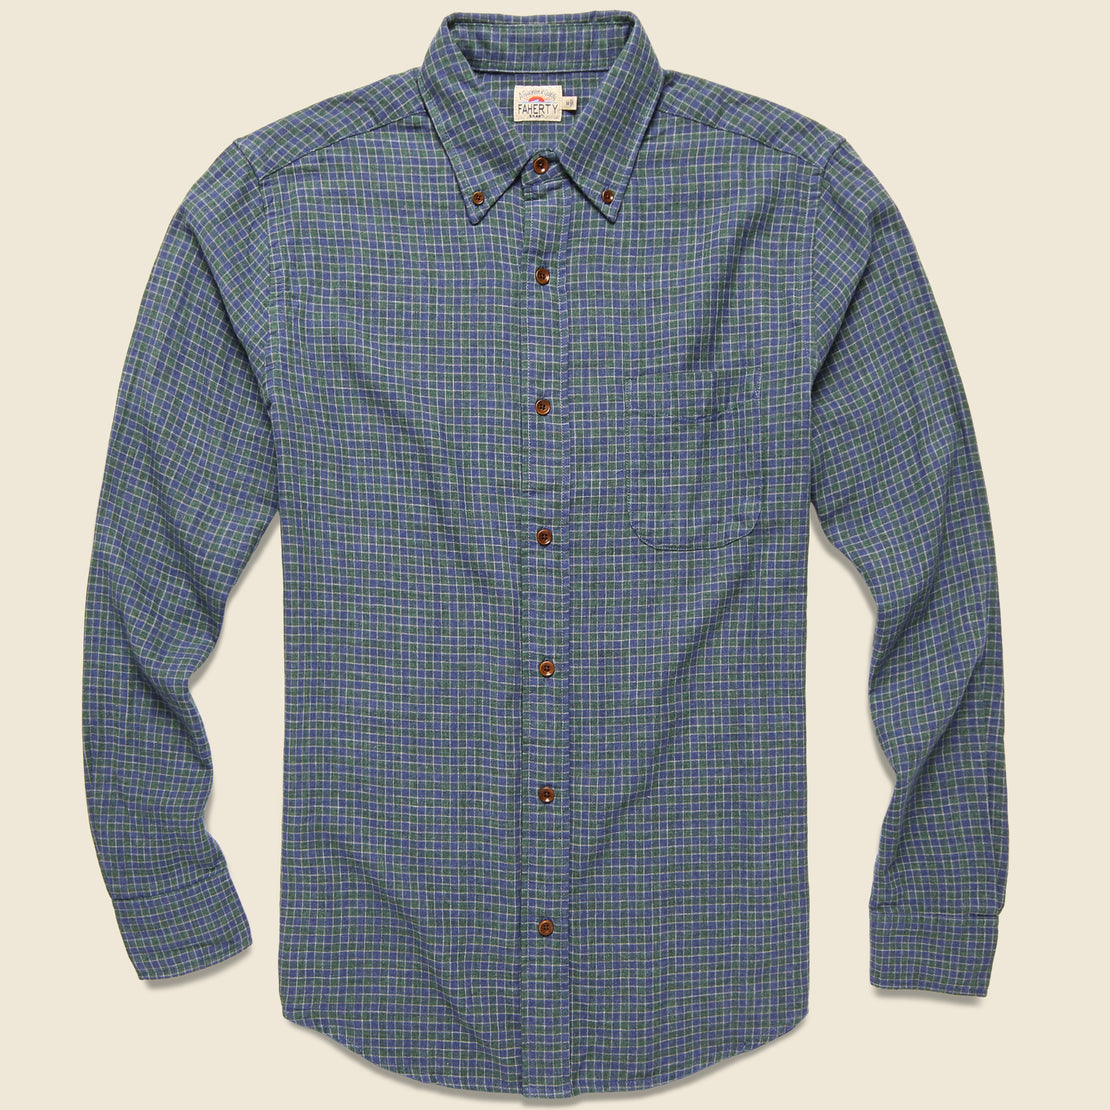 Faherty Doublecloth Pacific Shirt - Hunter Shadow Check